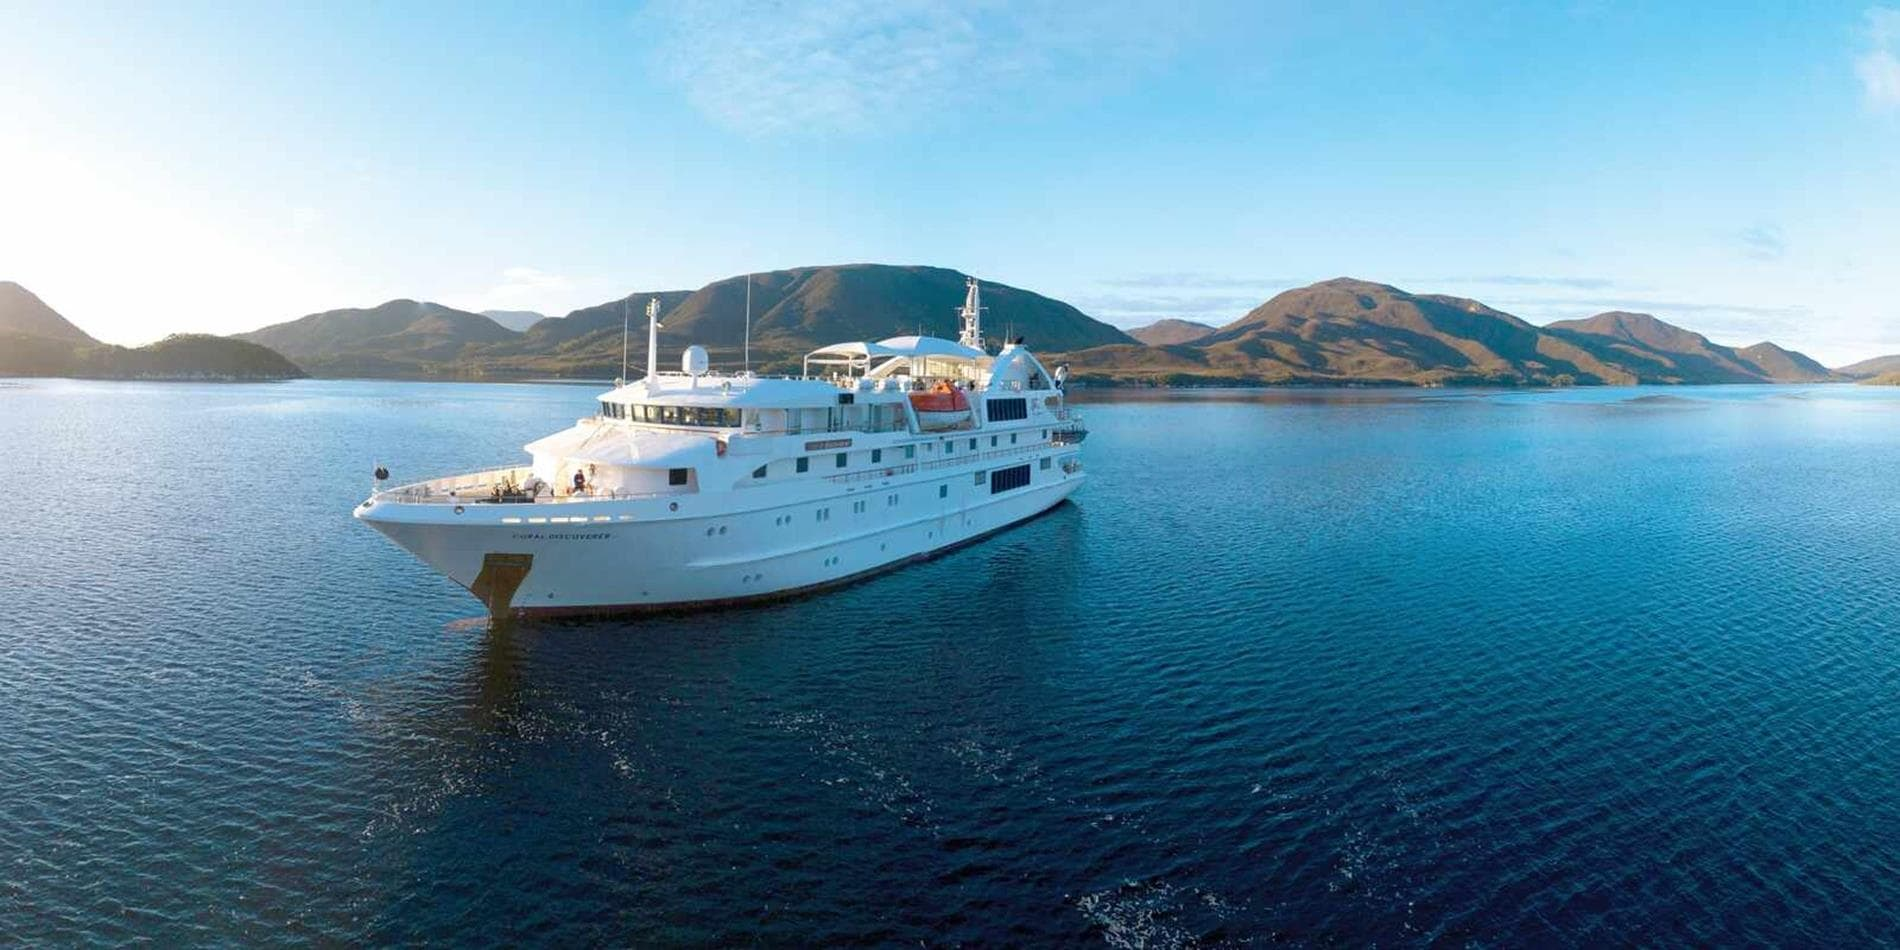 6 Day Tasmania By Small Ship Cruise, Hobart Return